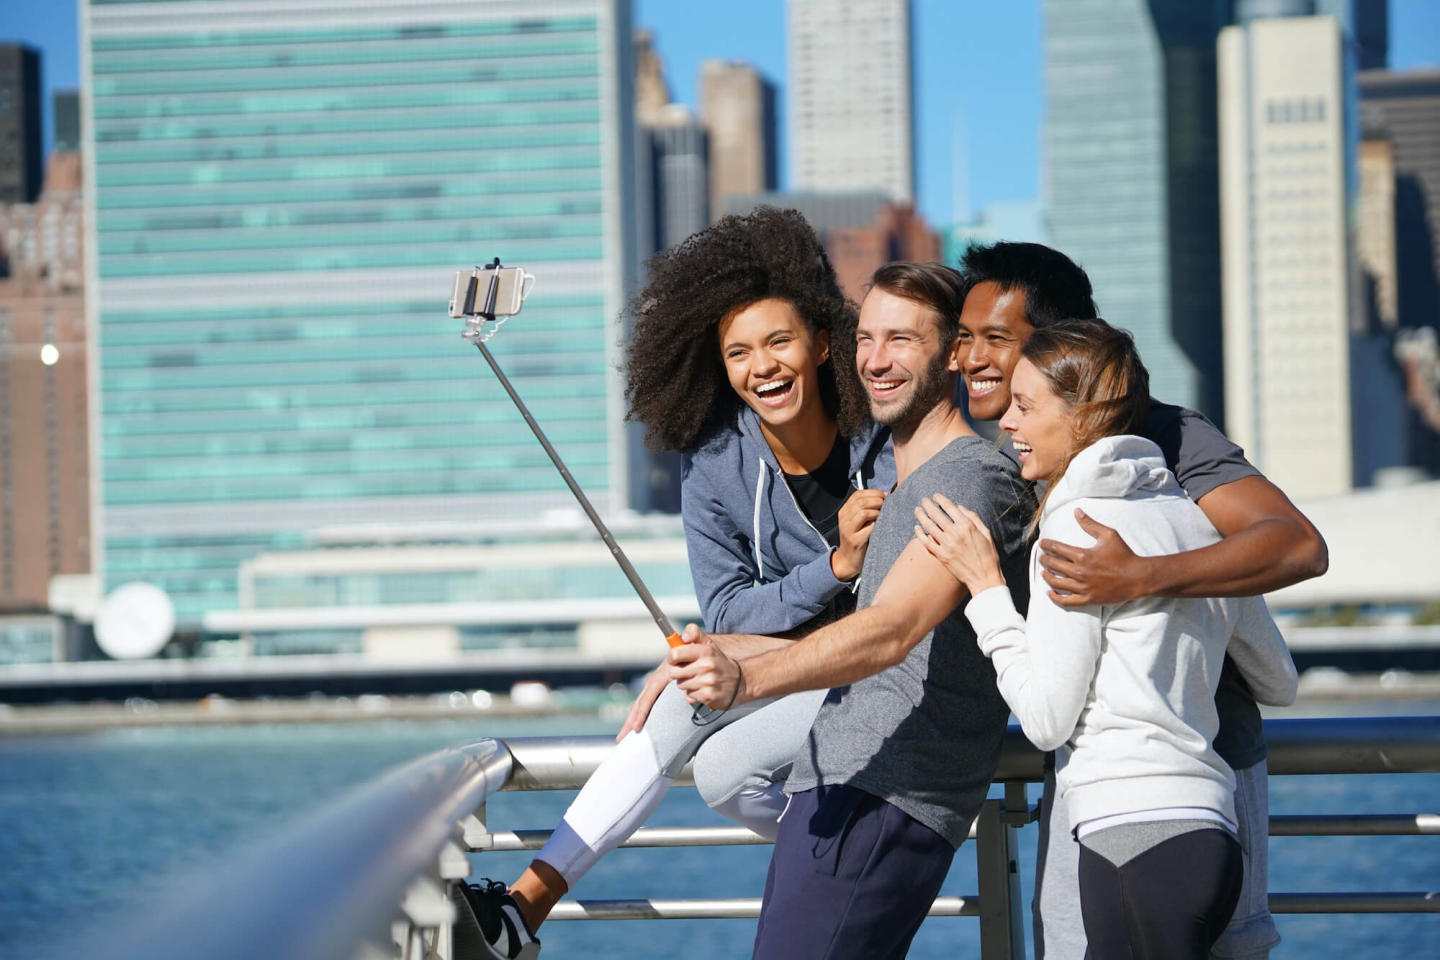 Image of a group of friends taking a picture with a selfie stick with manhattan behind them.